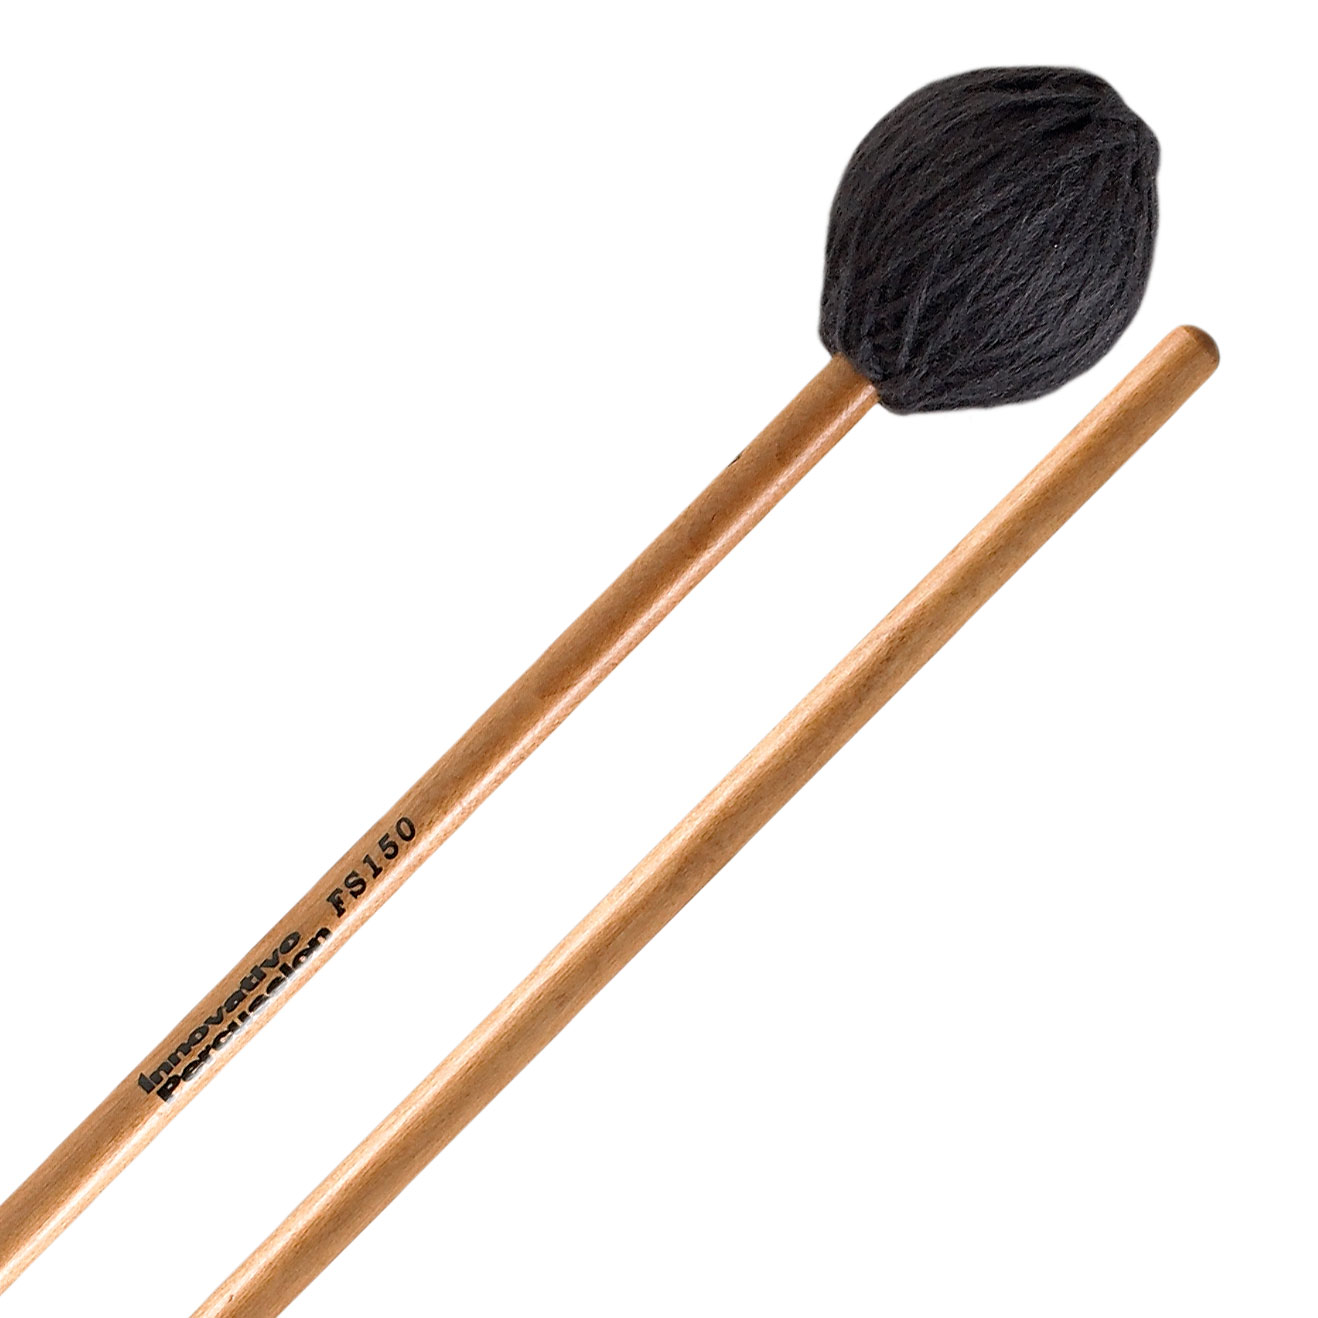 Innovative Percussion FS150 Field Series Soft Marimba Mallets with Birch Shafts